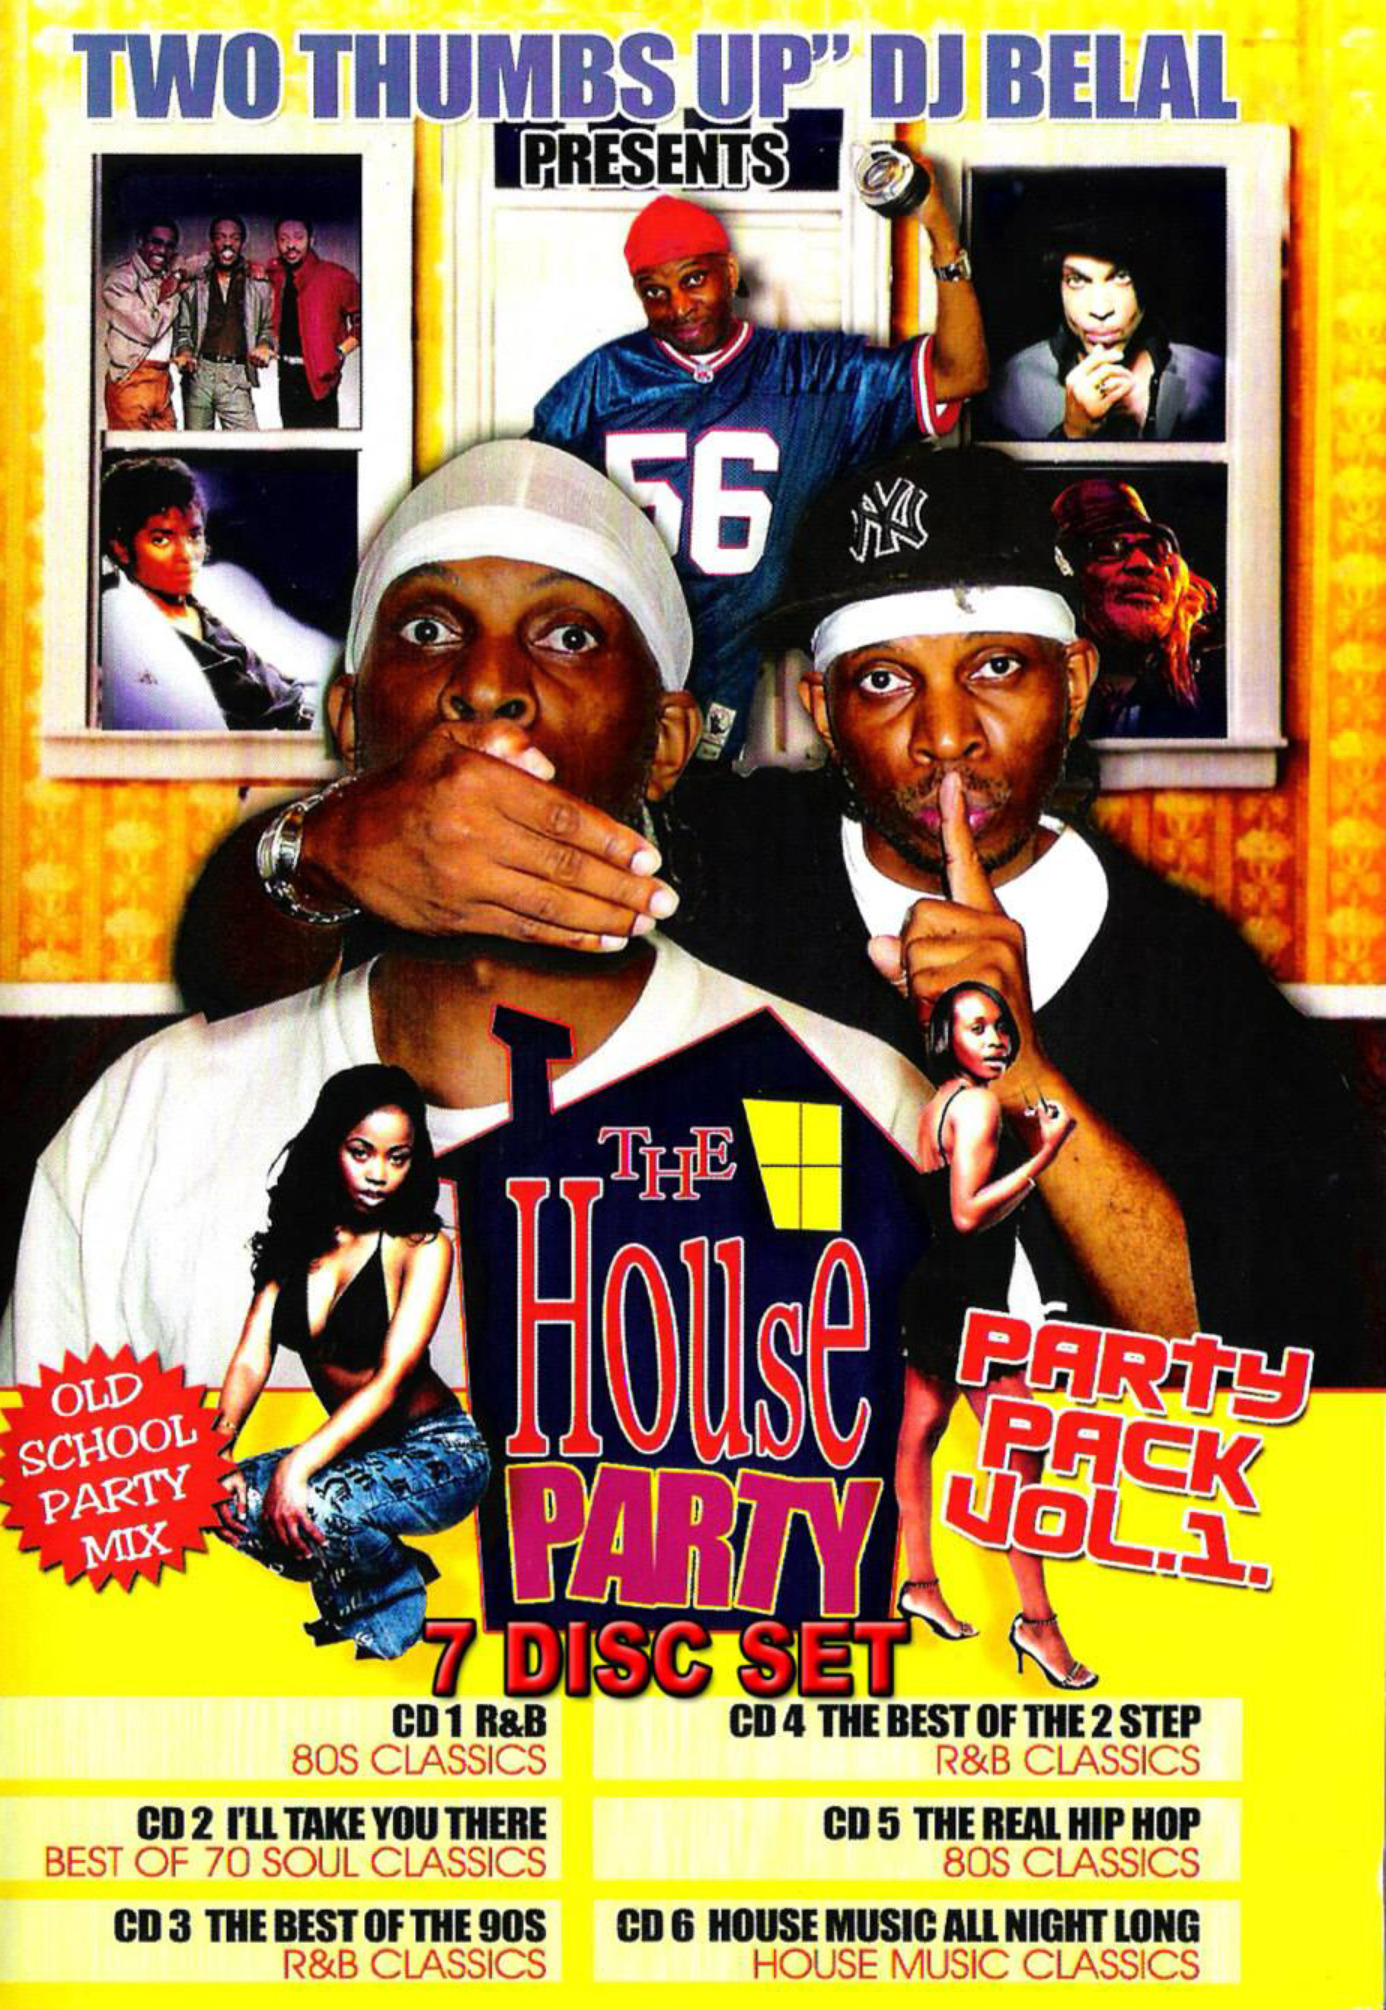 Old School House Party Mix 5 MP3 - The Legendary DJ Belal